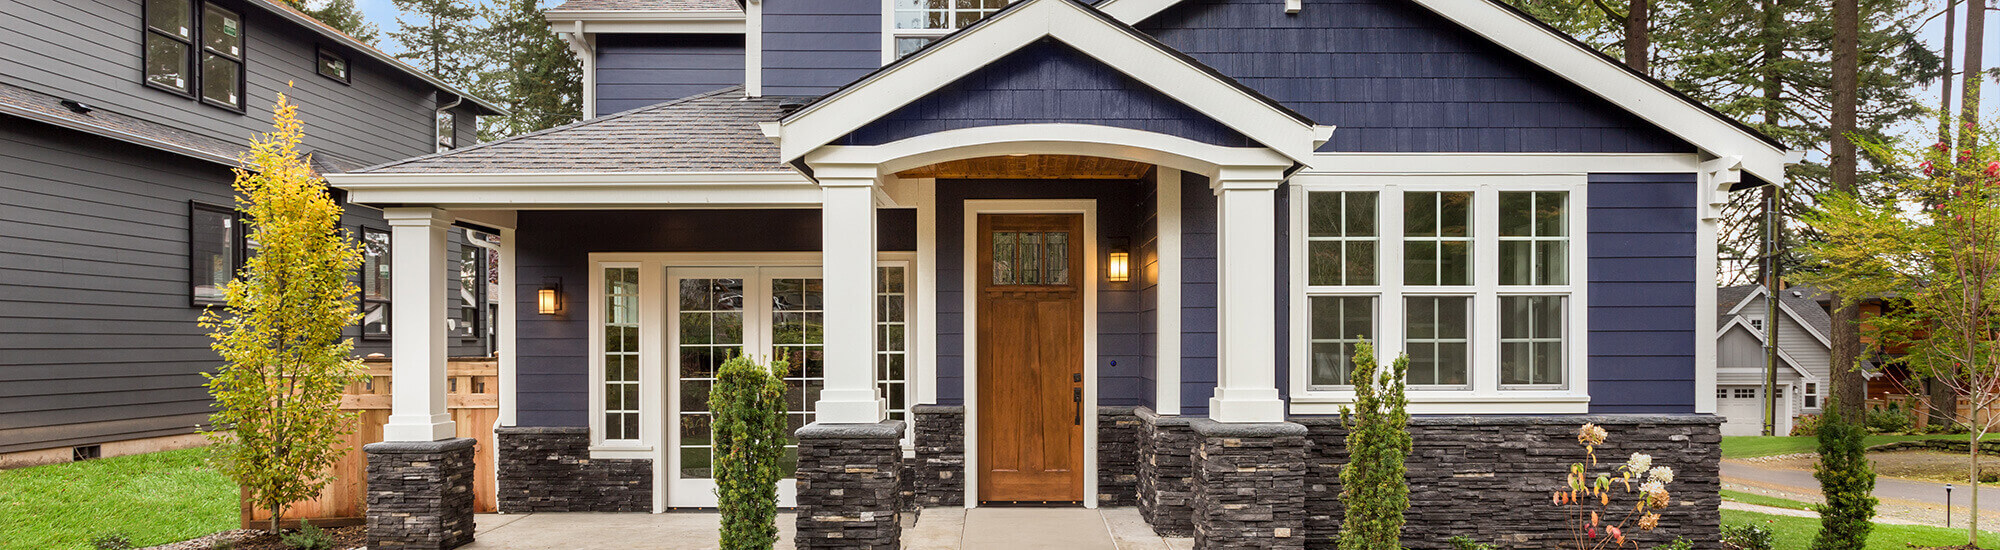 Windows and Doors Experts & Kempenfelt Windows and Doors | The Best In Barrie u0026 Newmarket